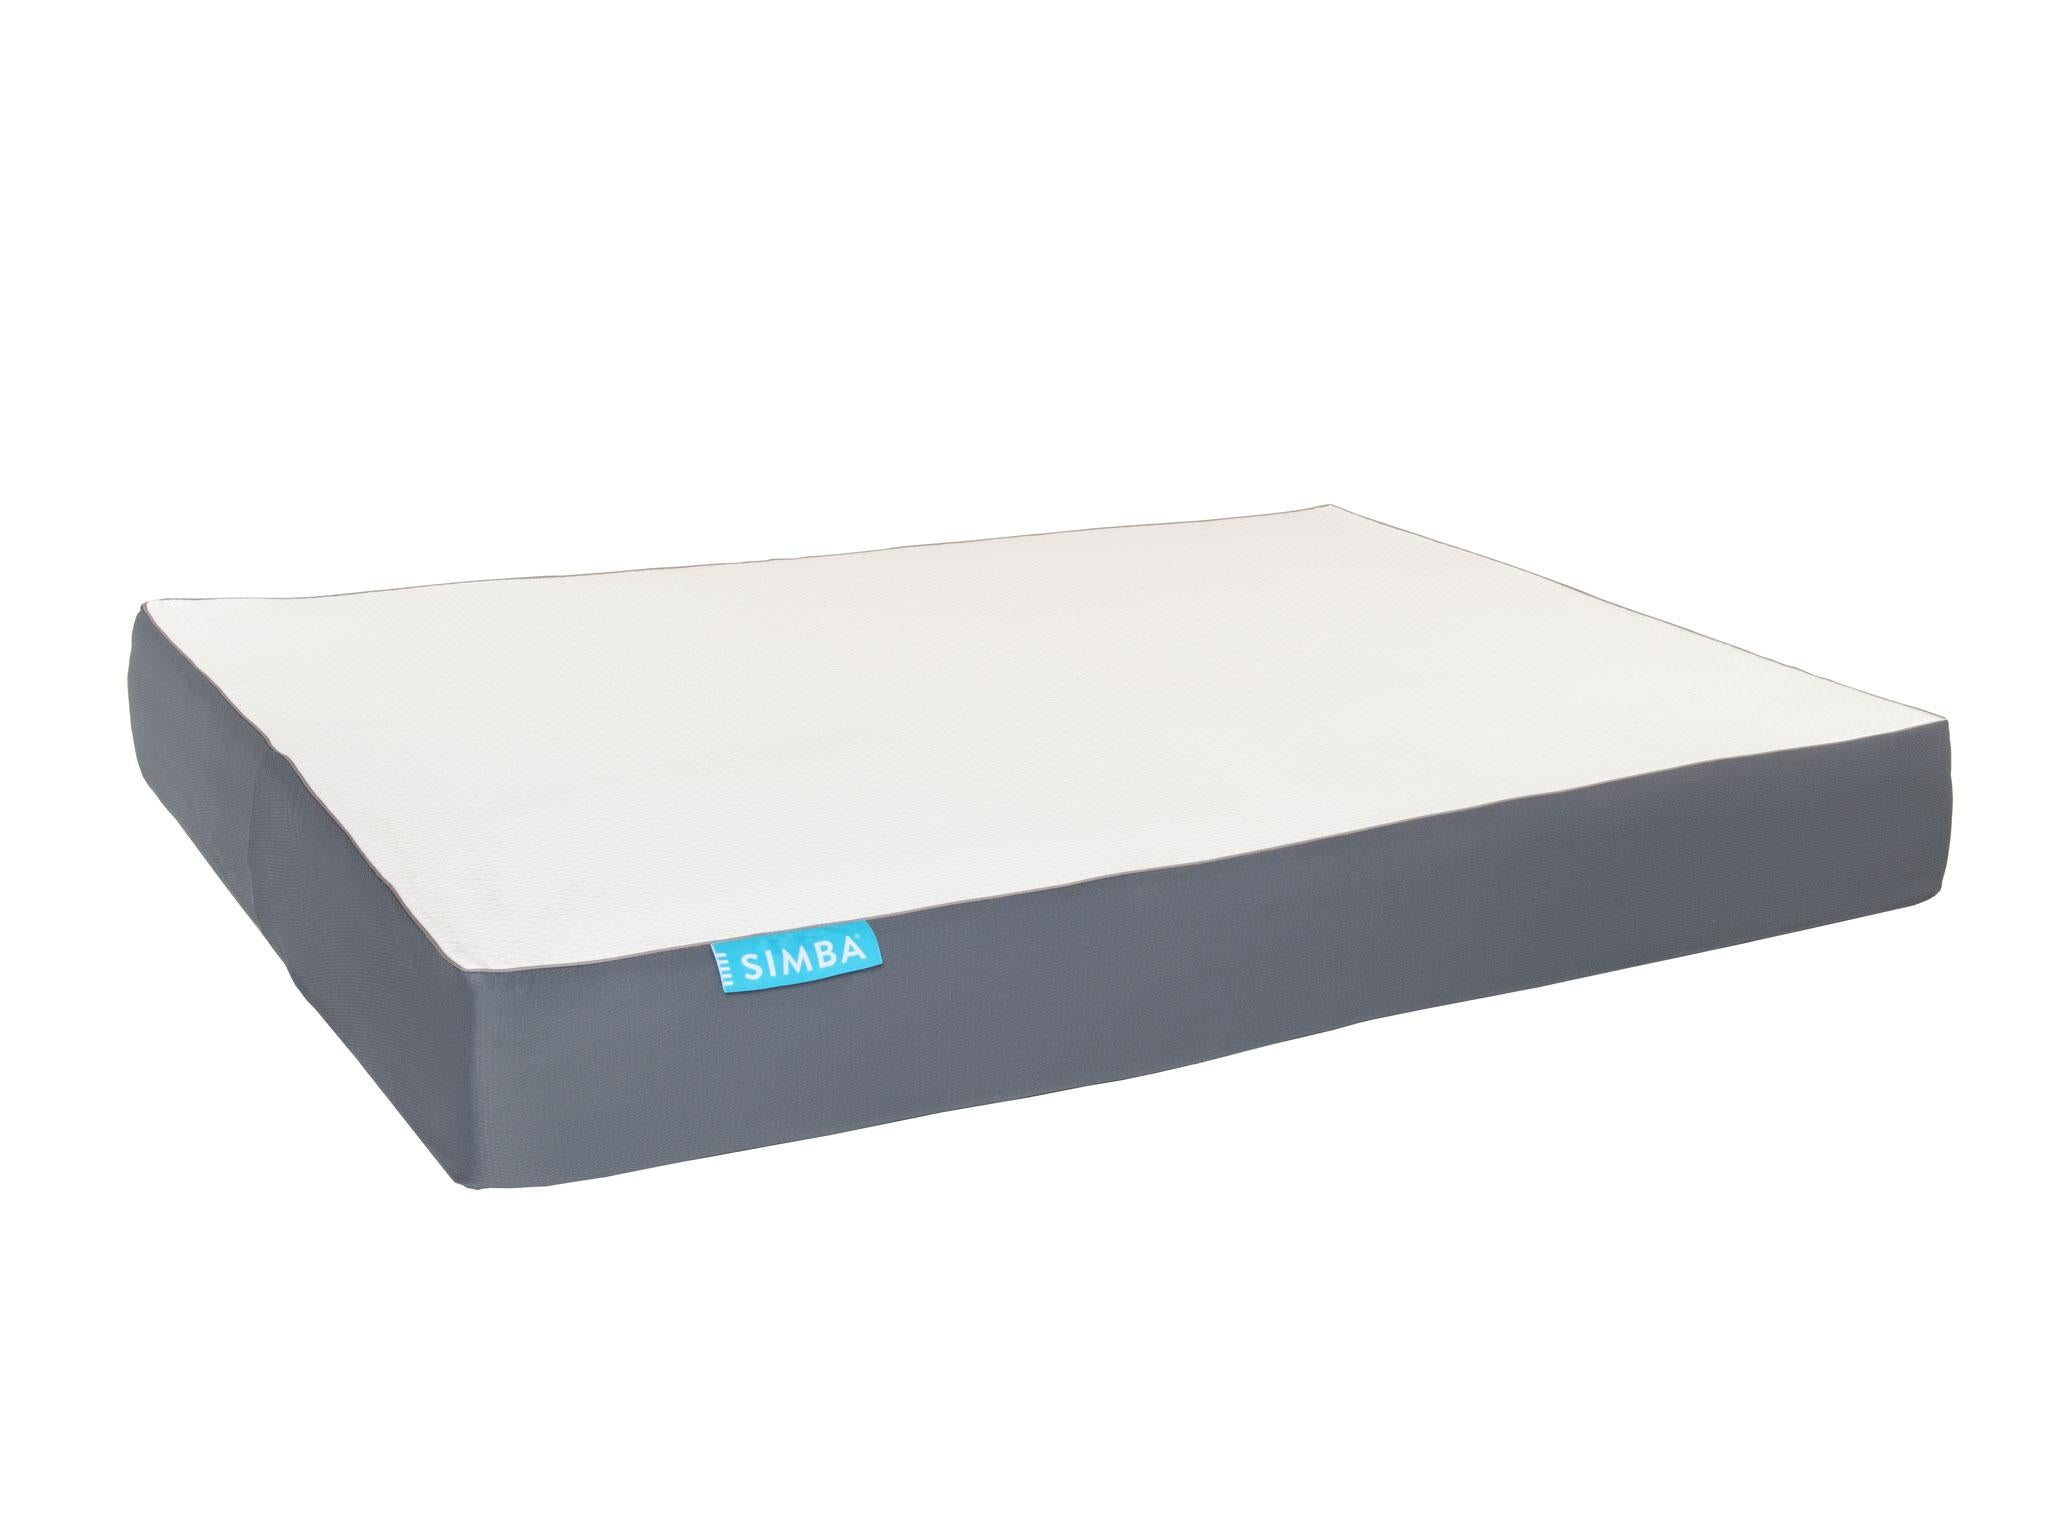 side garden this extras core the a one independent an house best comes is mattress packed outer memory foam review another reviews uk indybest vacuum of and from simba kids sleeper made start tempur up mattresses with layer